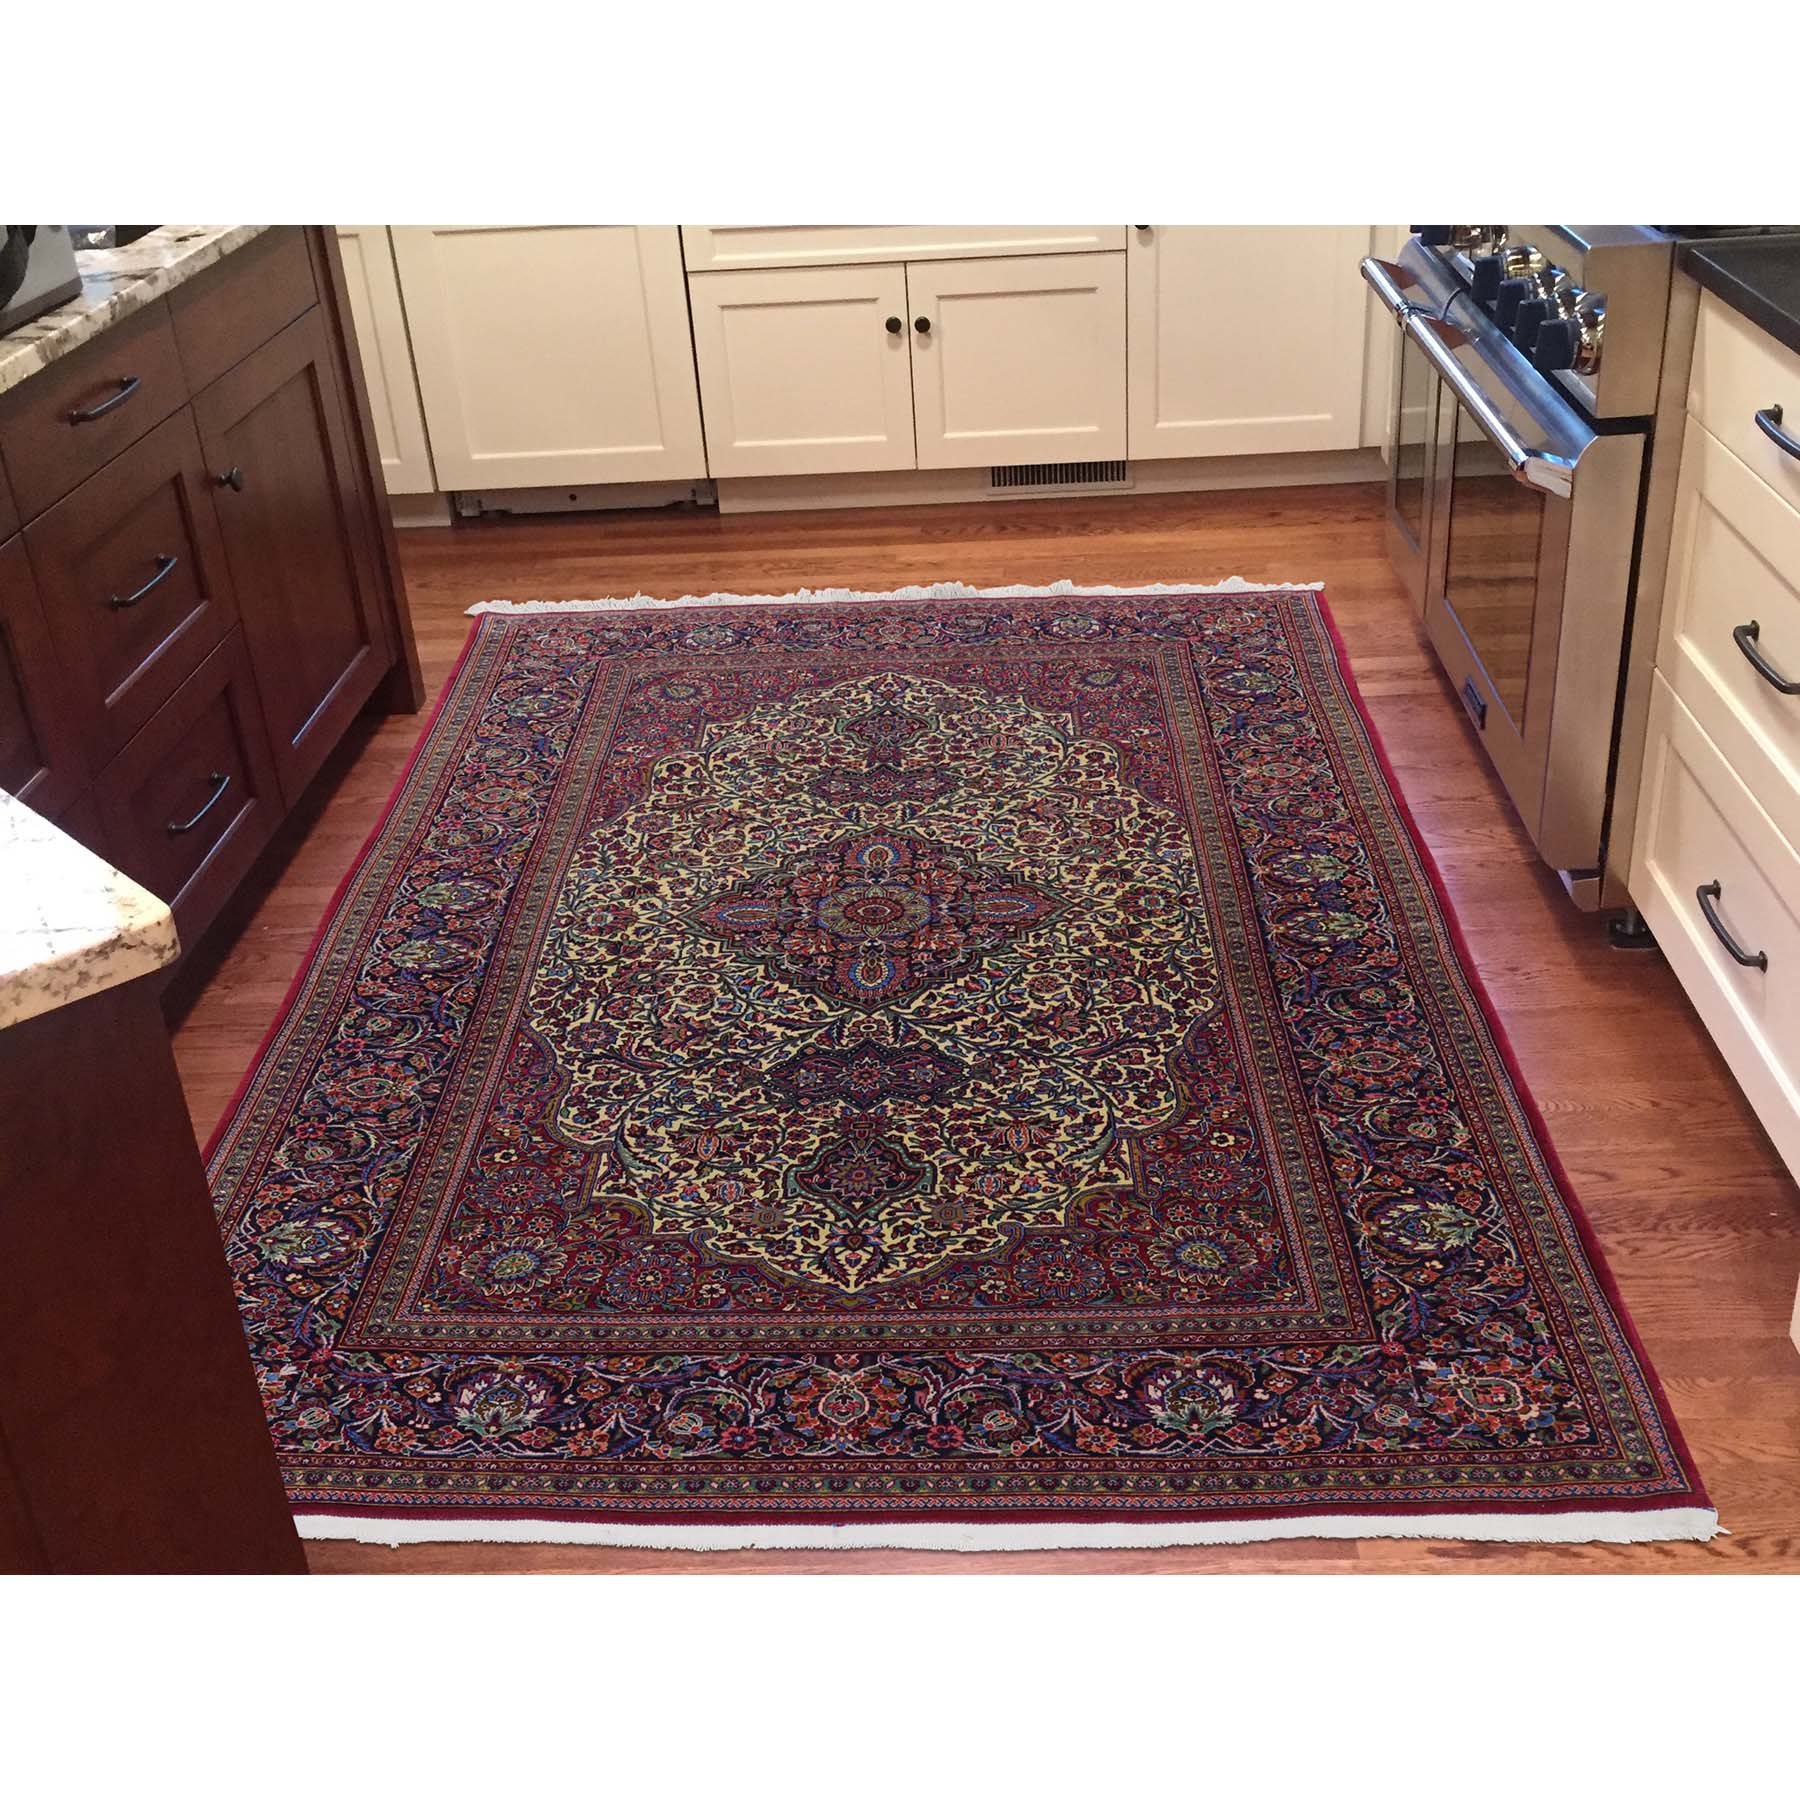 "4'5""x6'9"" Ivory Antique Persian Kashan 300 KPSI Kork wool Hand-Knotted Oriental Rug"